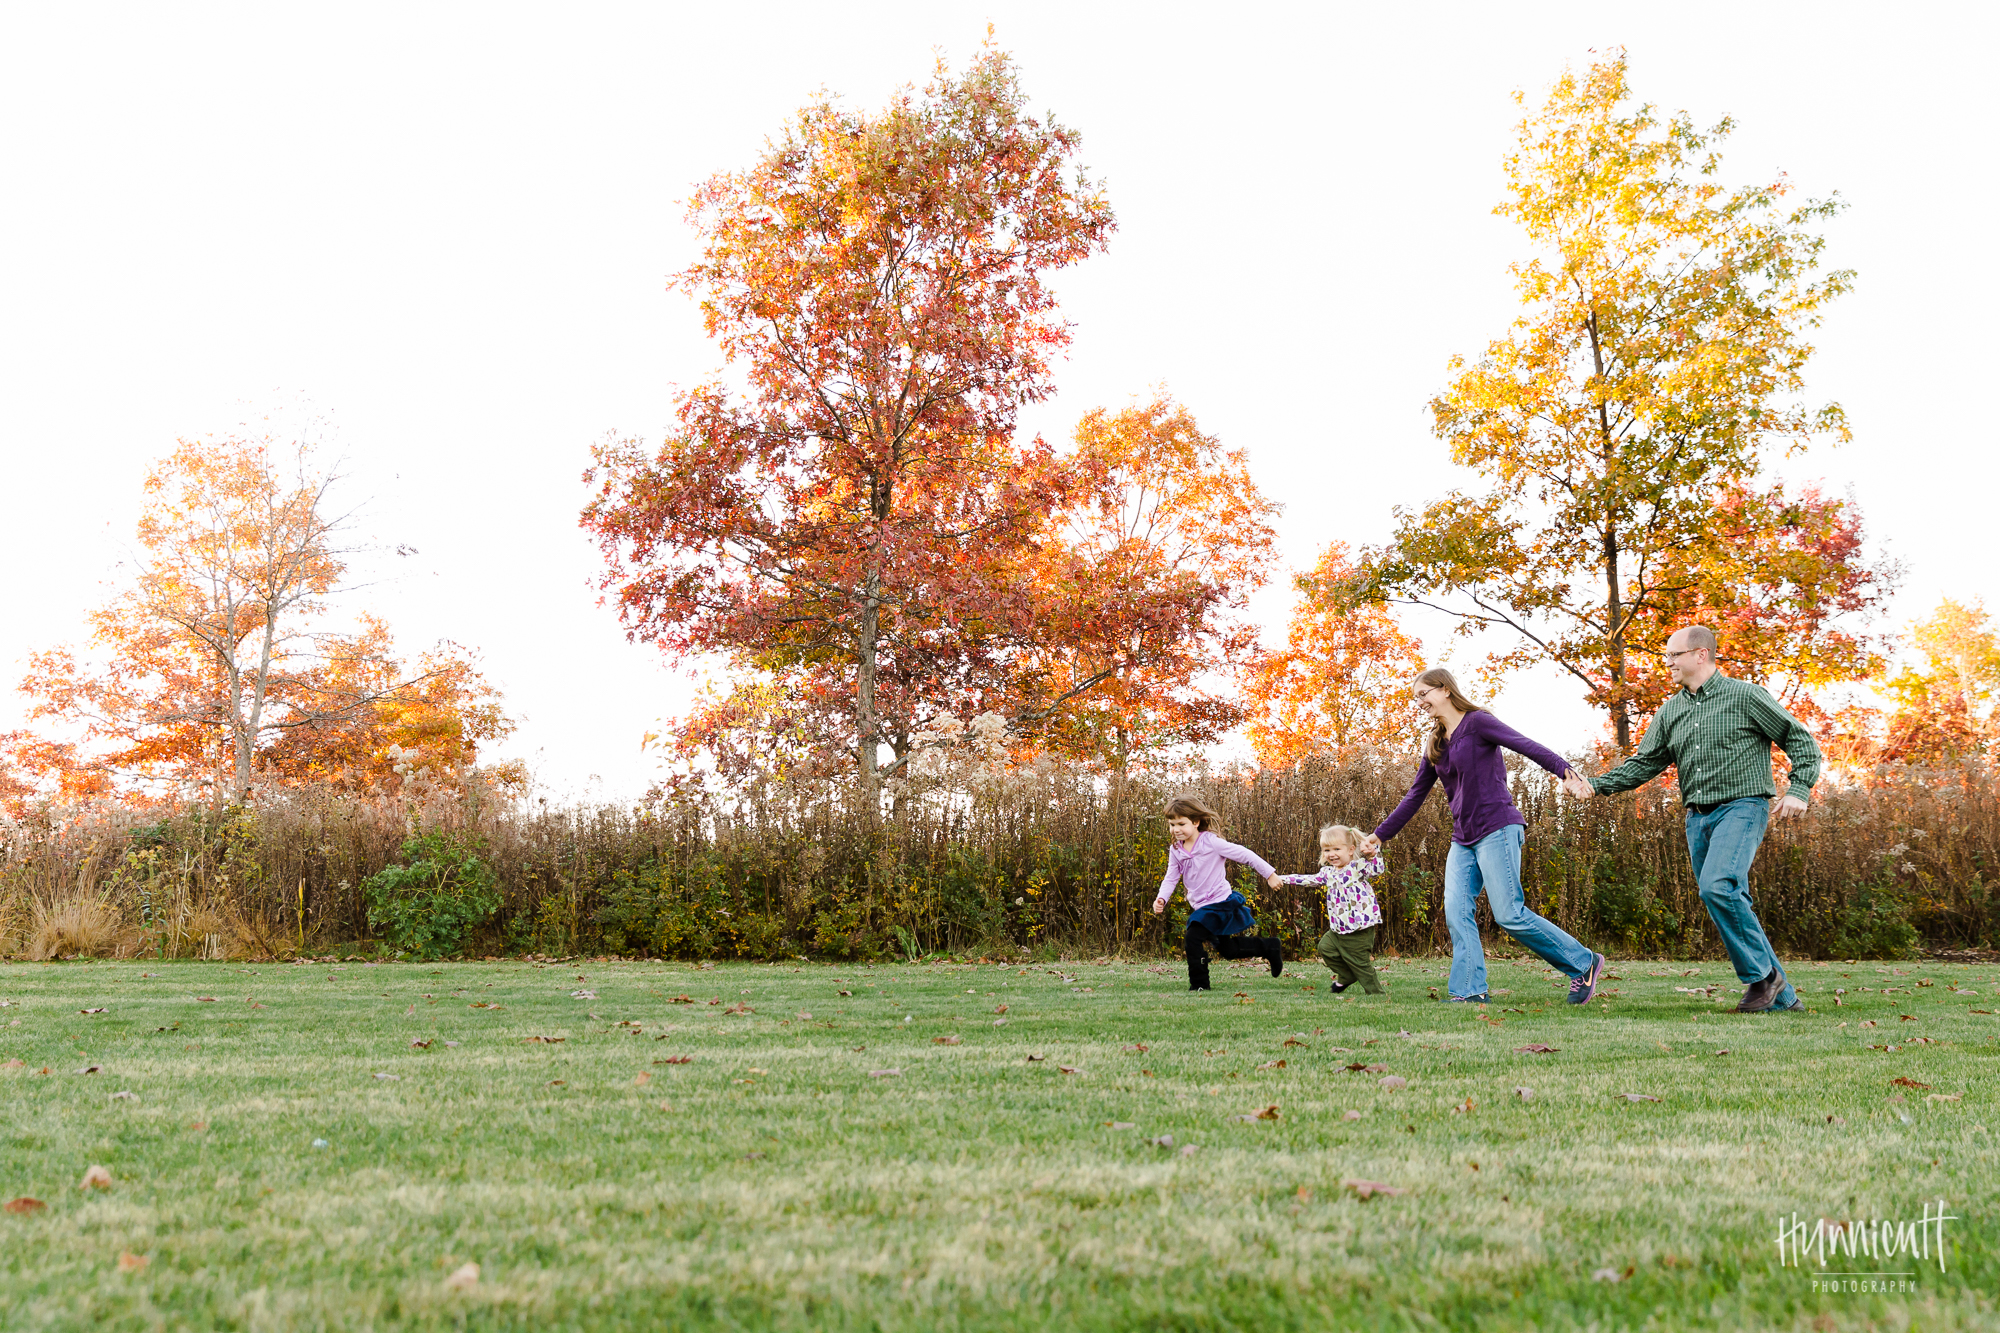 Outdoor-Park-Family-Hunnicutt-Photography-Rebecca-Hunnicutt-Farren-USA-10